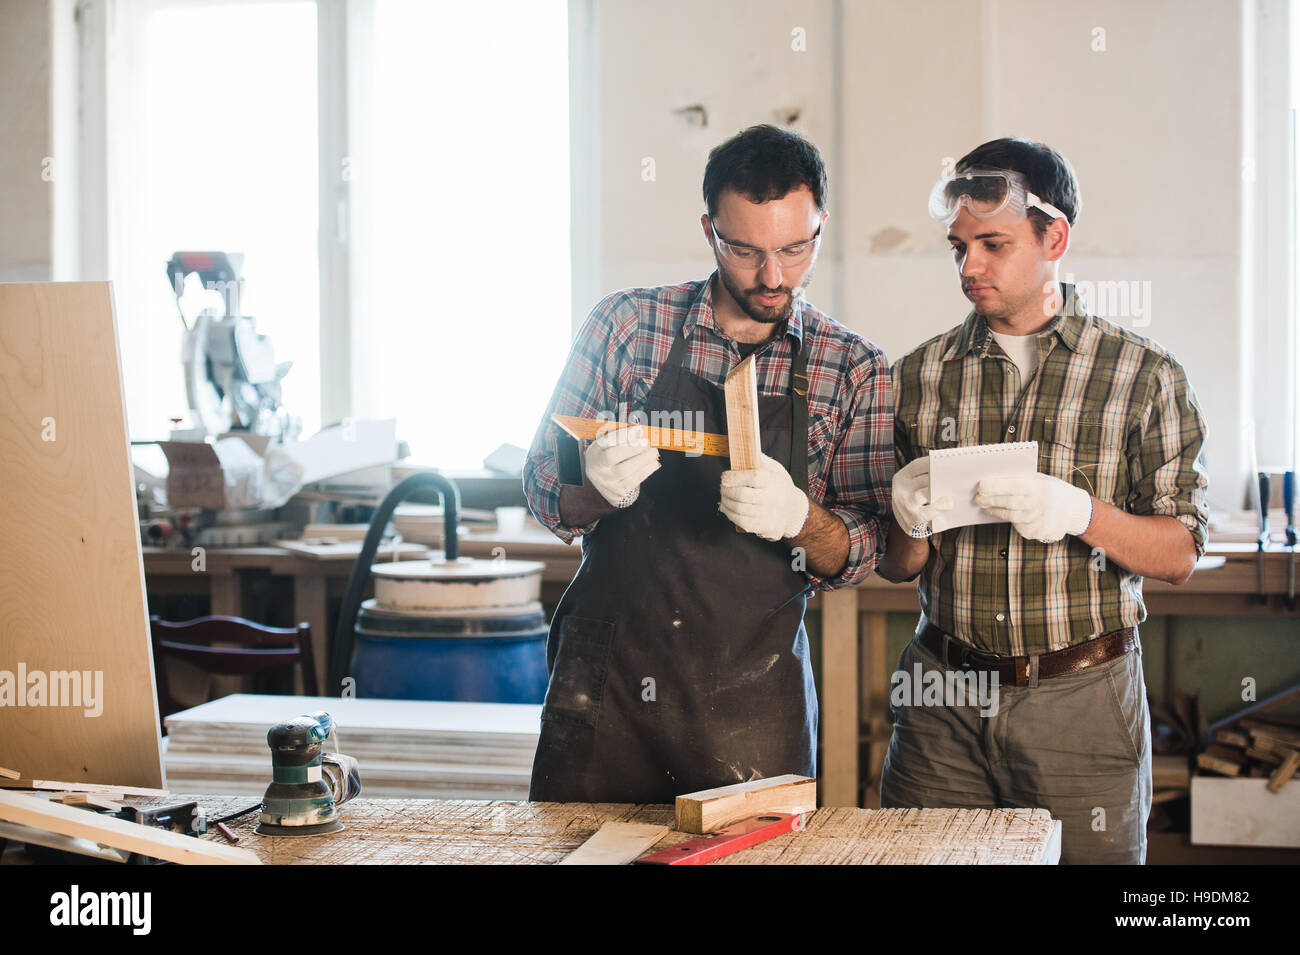 Happy male carpenter showing something to coworker at his notebook papers in workshop - Stock Image